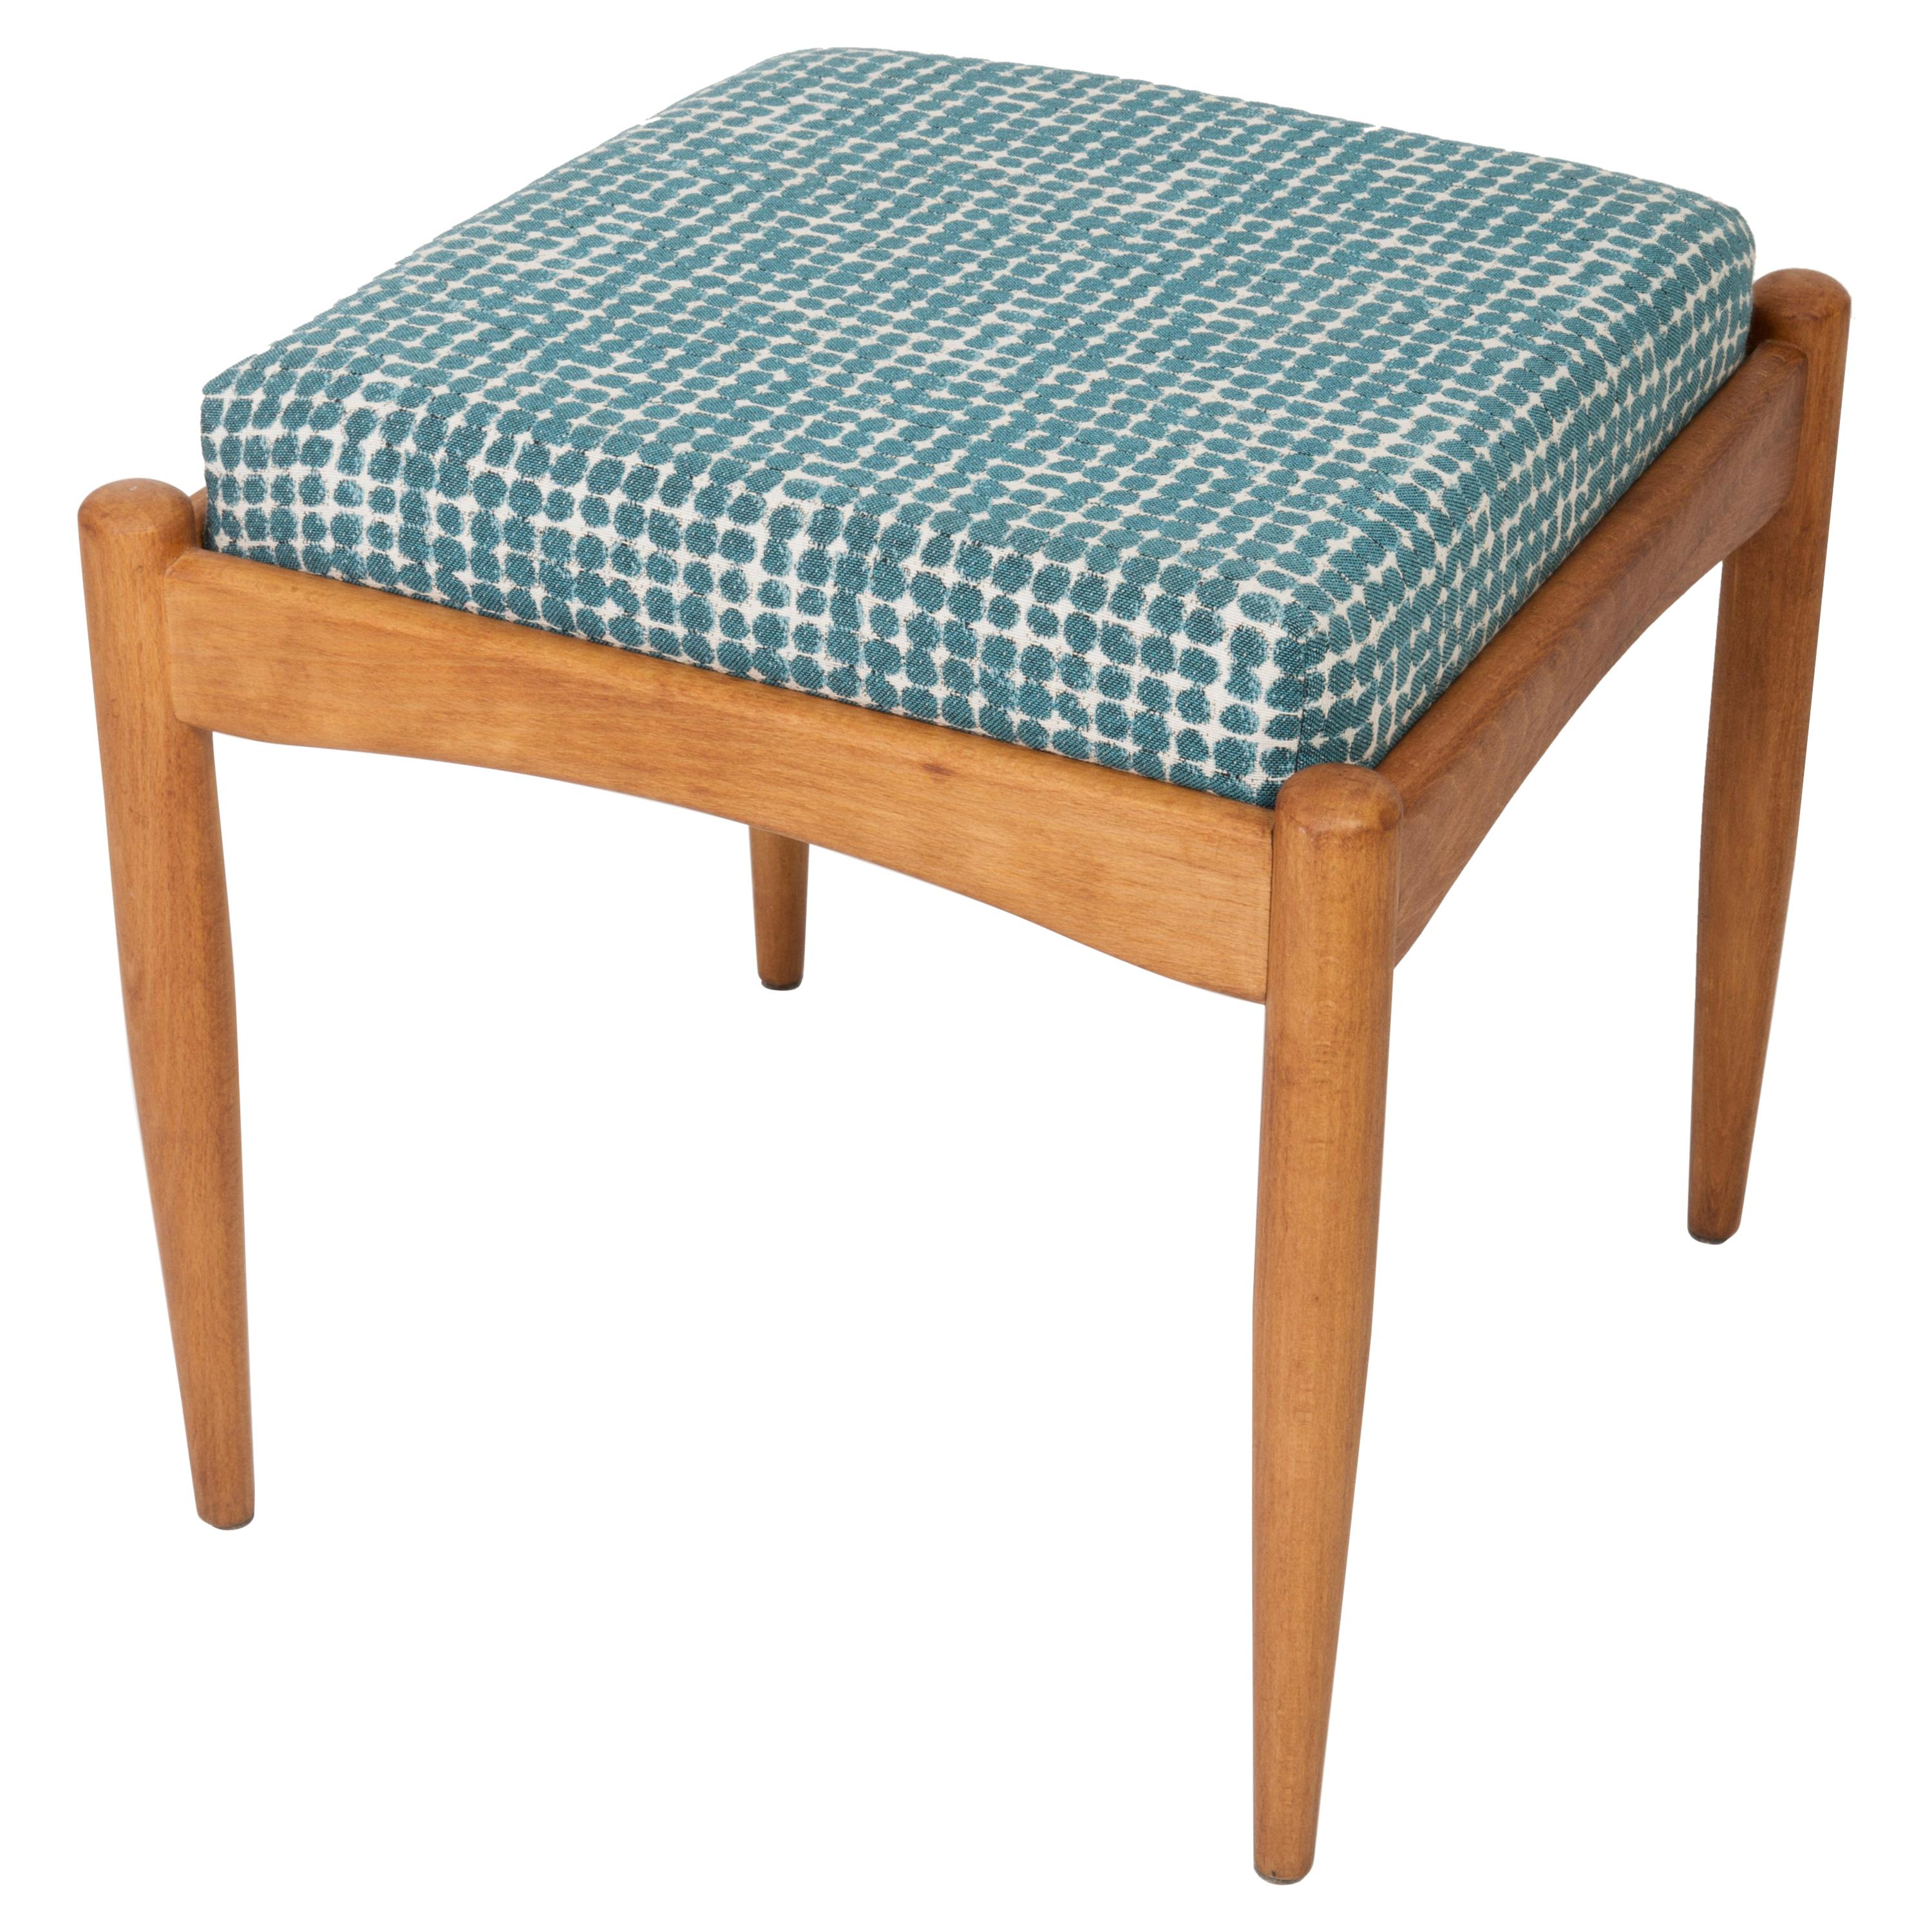 20th Century Green and White Stool, 1960s